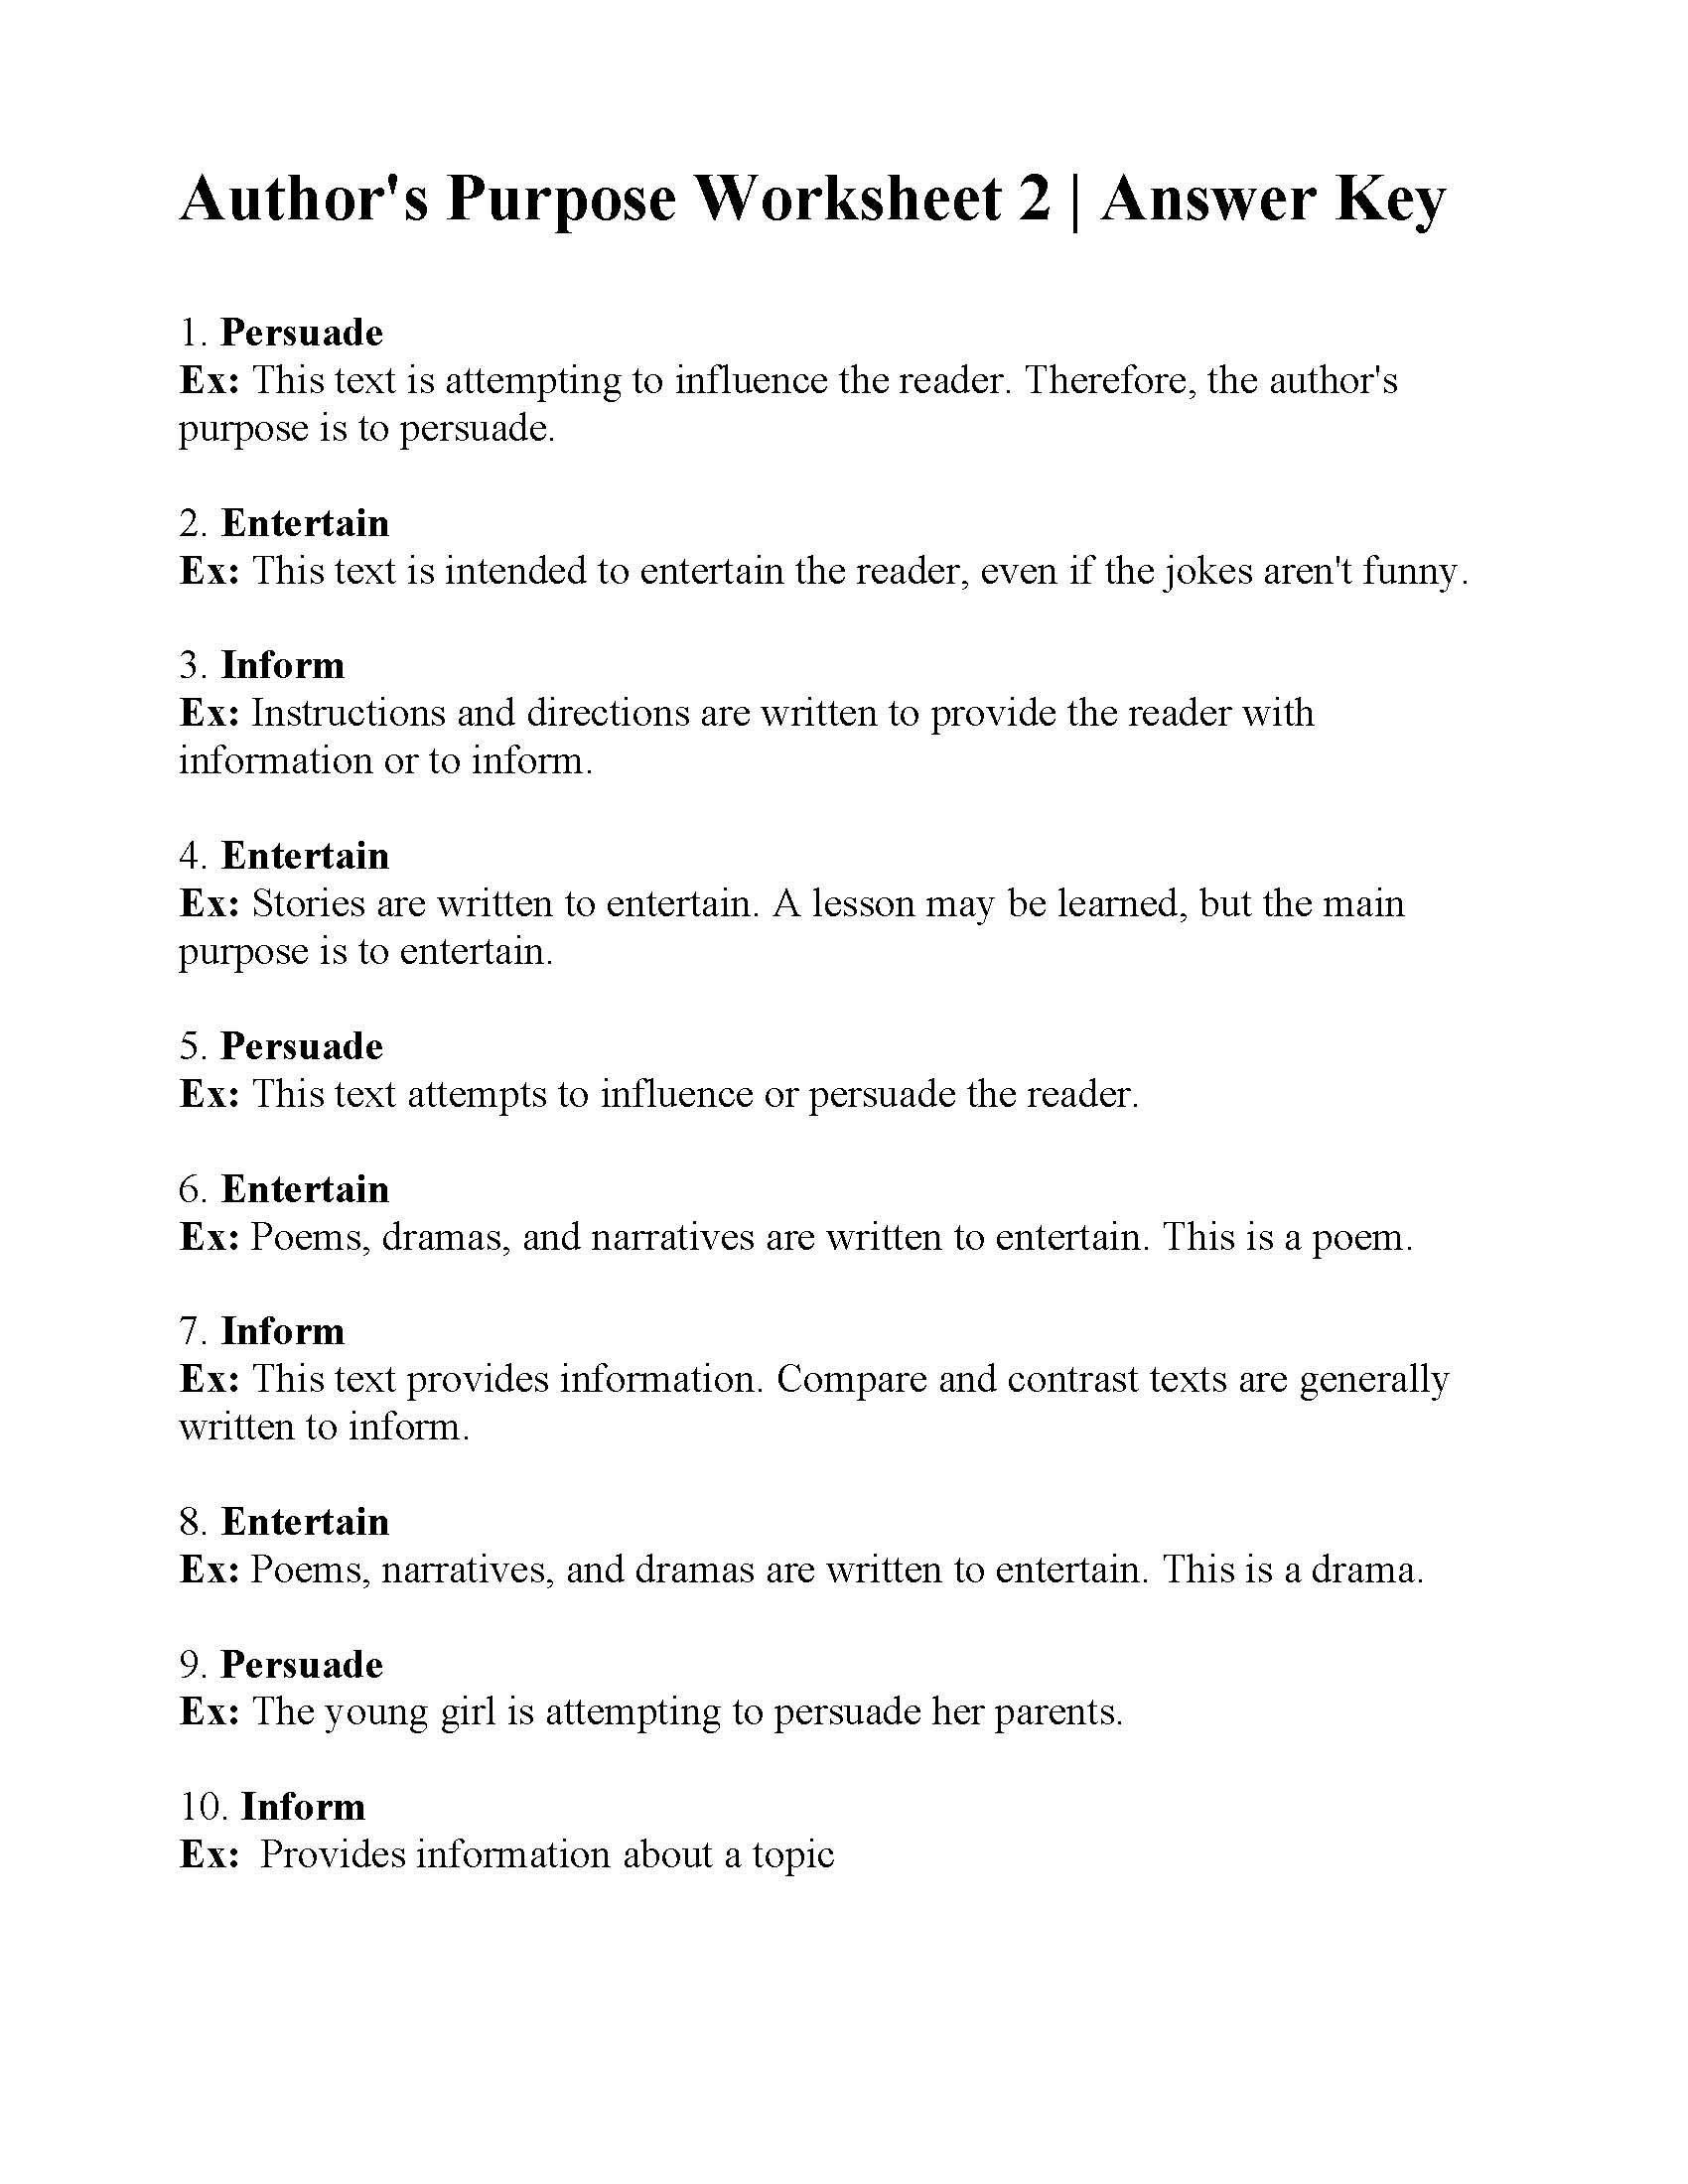 Science World Worksheet Answers This Is The Answer Key For The Author S Purpose Worksheet 2 In 2020 Author S Purpose Worksheet Authors Purpose Science Worksheets